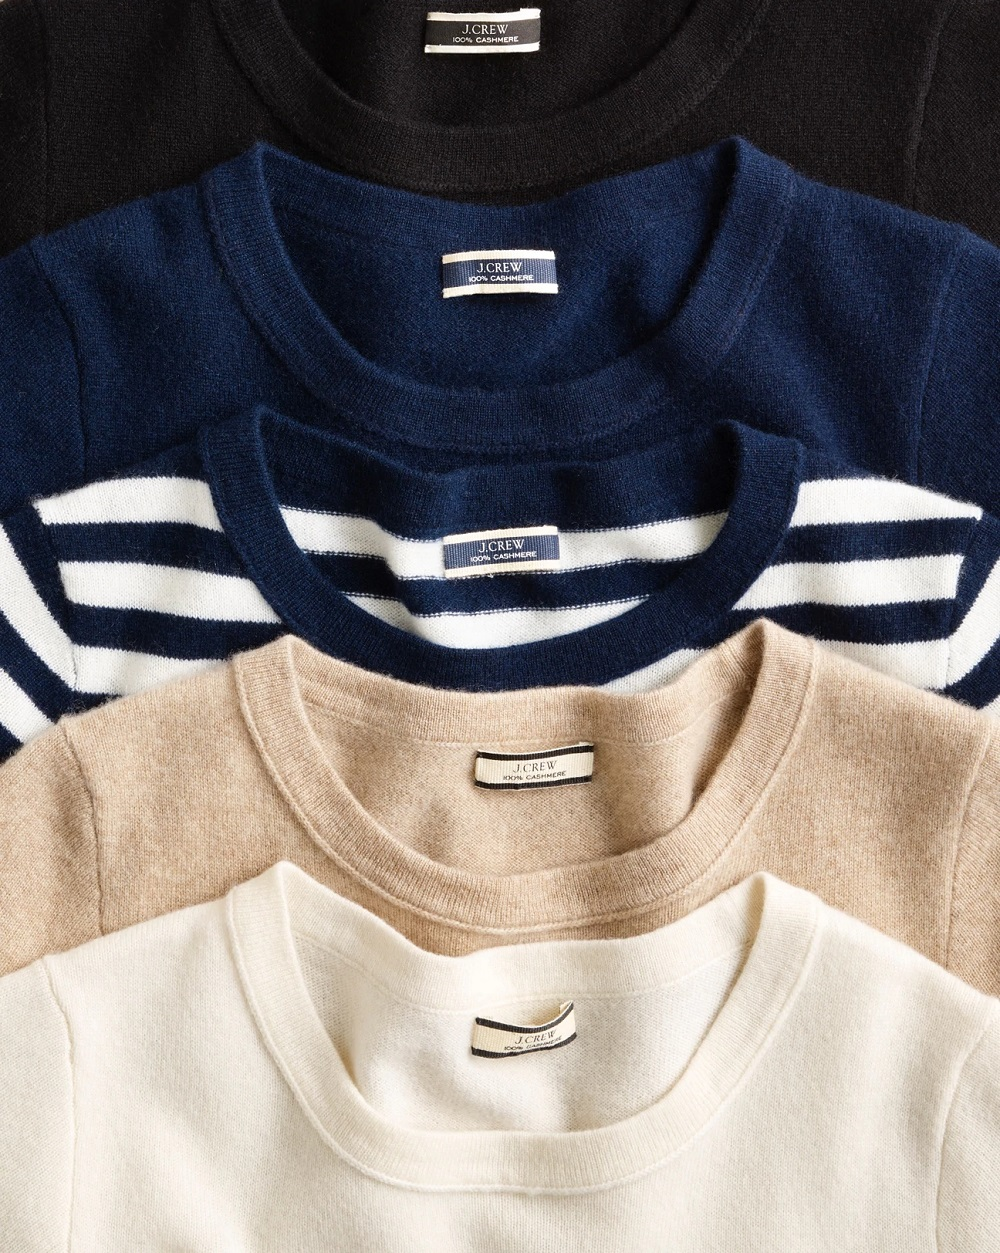 J.Crew said all of its cashmere sweaters and non-apparel pieces will be produced using The Good Cashmere Standard from spring onward.